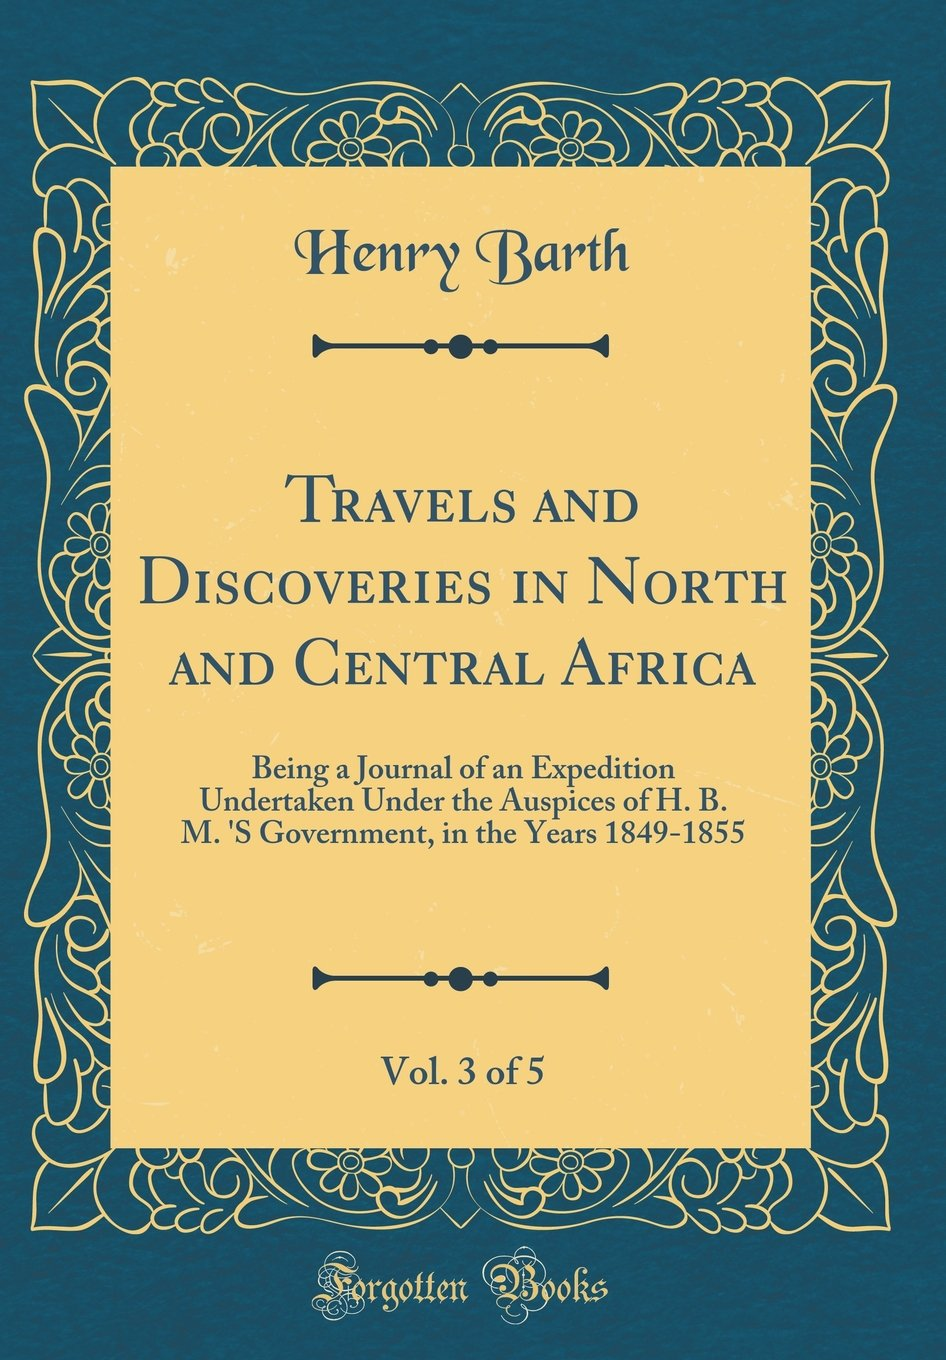 Travels and Discoveries in North and Central Africa, Vol. 3 of 5: Being a Journal of an Expedition Undertaken Under the Auspices of H. B. M. 'S Government, in the Years 1849-1855 (Classic Reprint) pdf